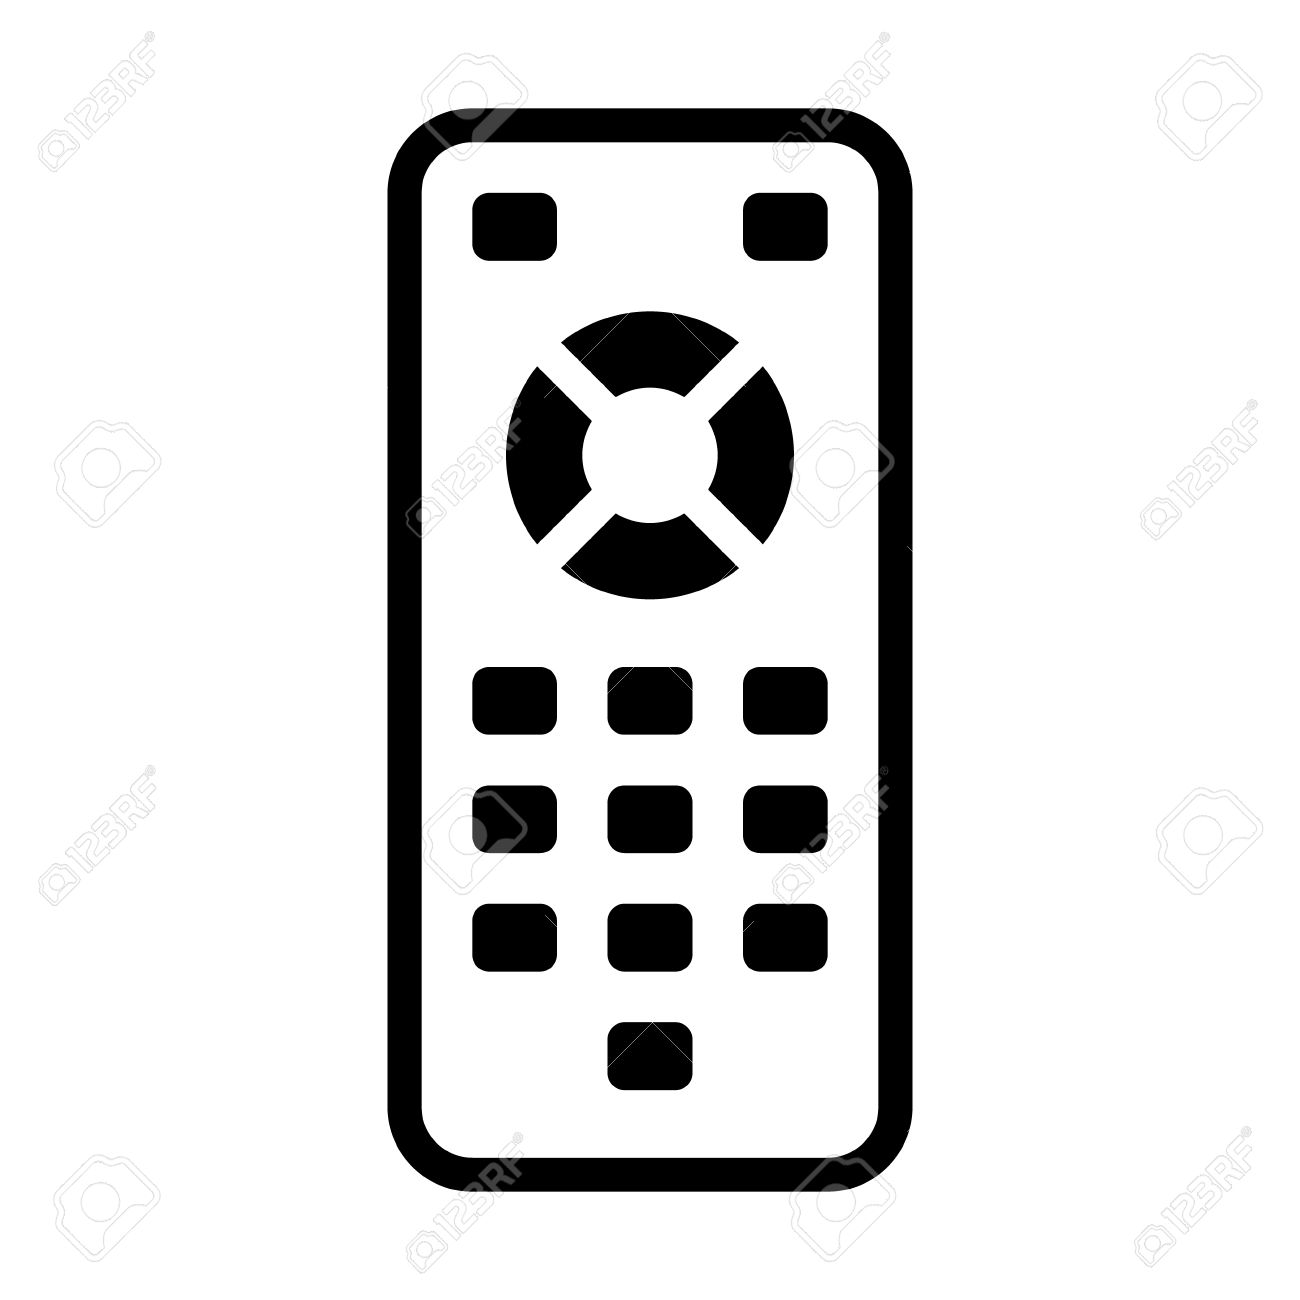 tv remote control line art icon for apps and websites royalty free rh 123rf com TV Remote Control Cartoon Remote Control